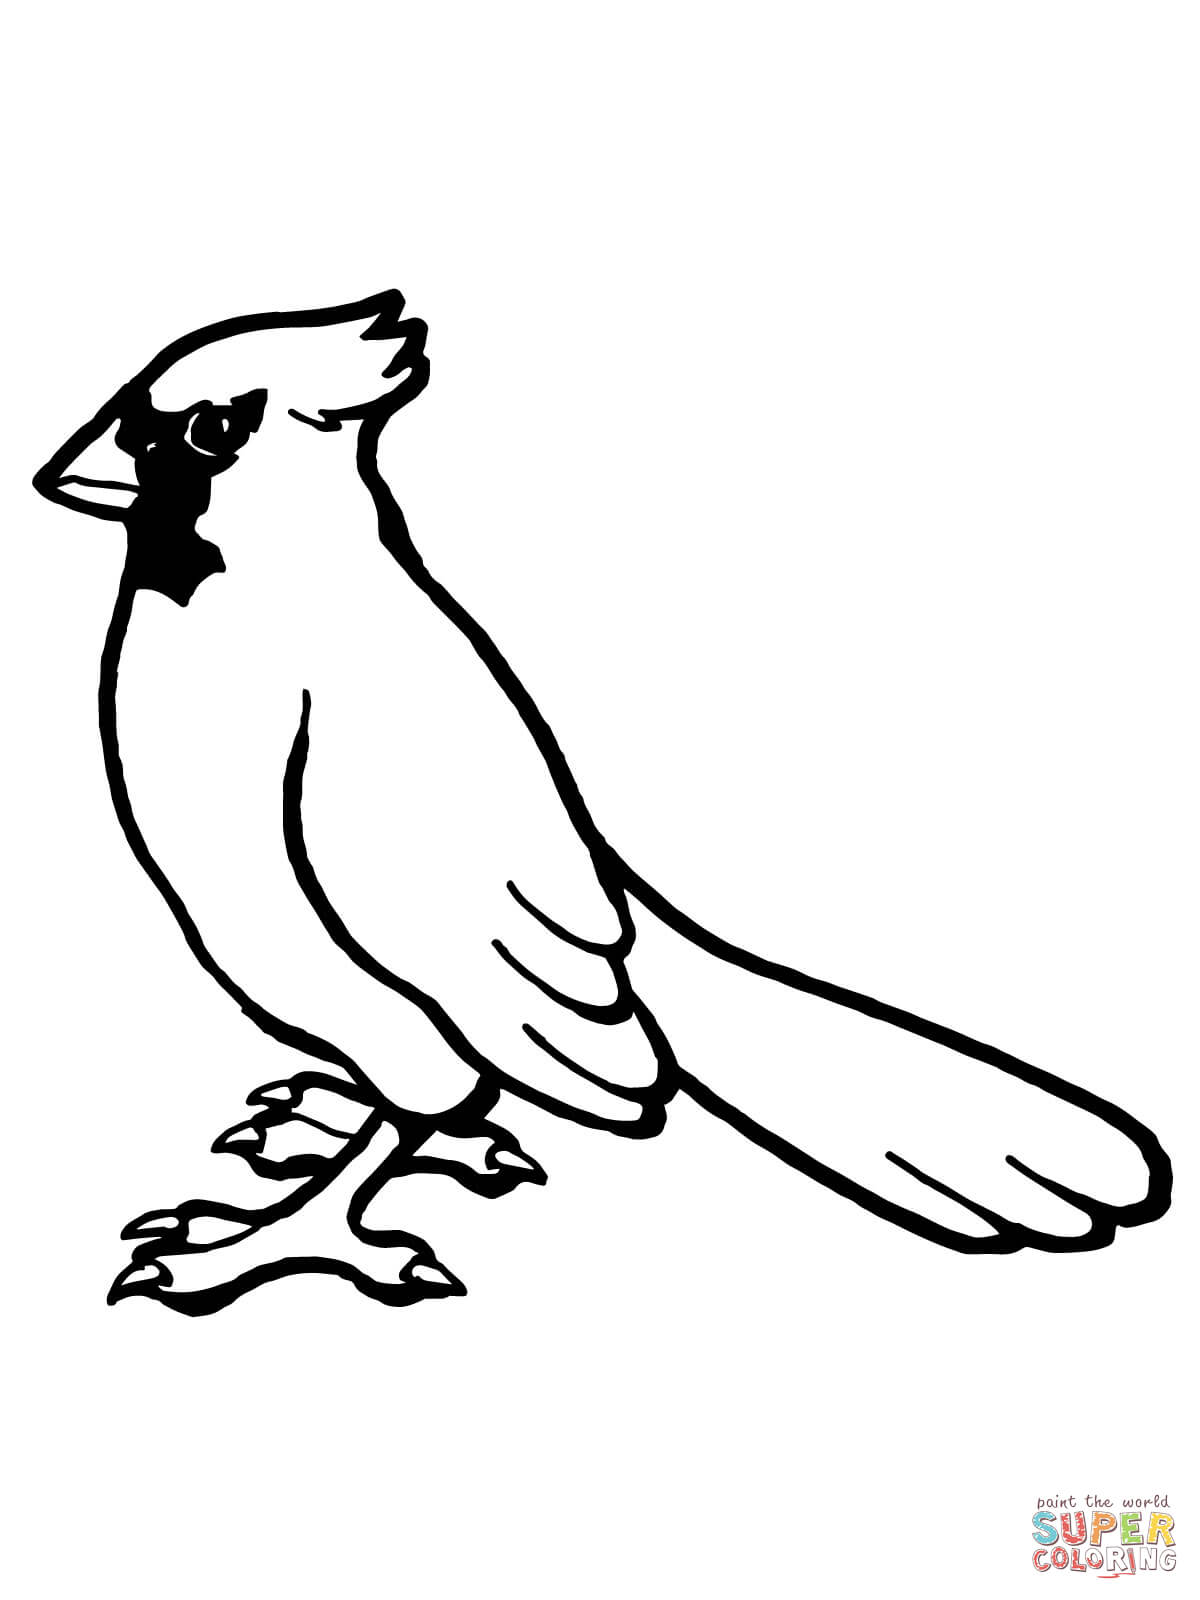 Nothern Cardinal Bird Coloring Page